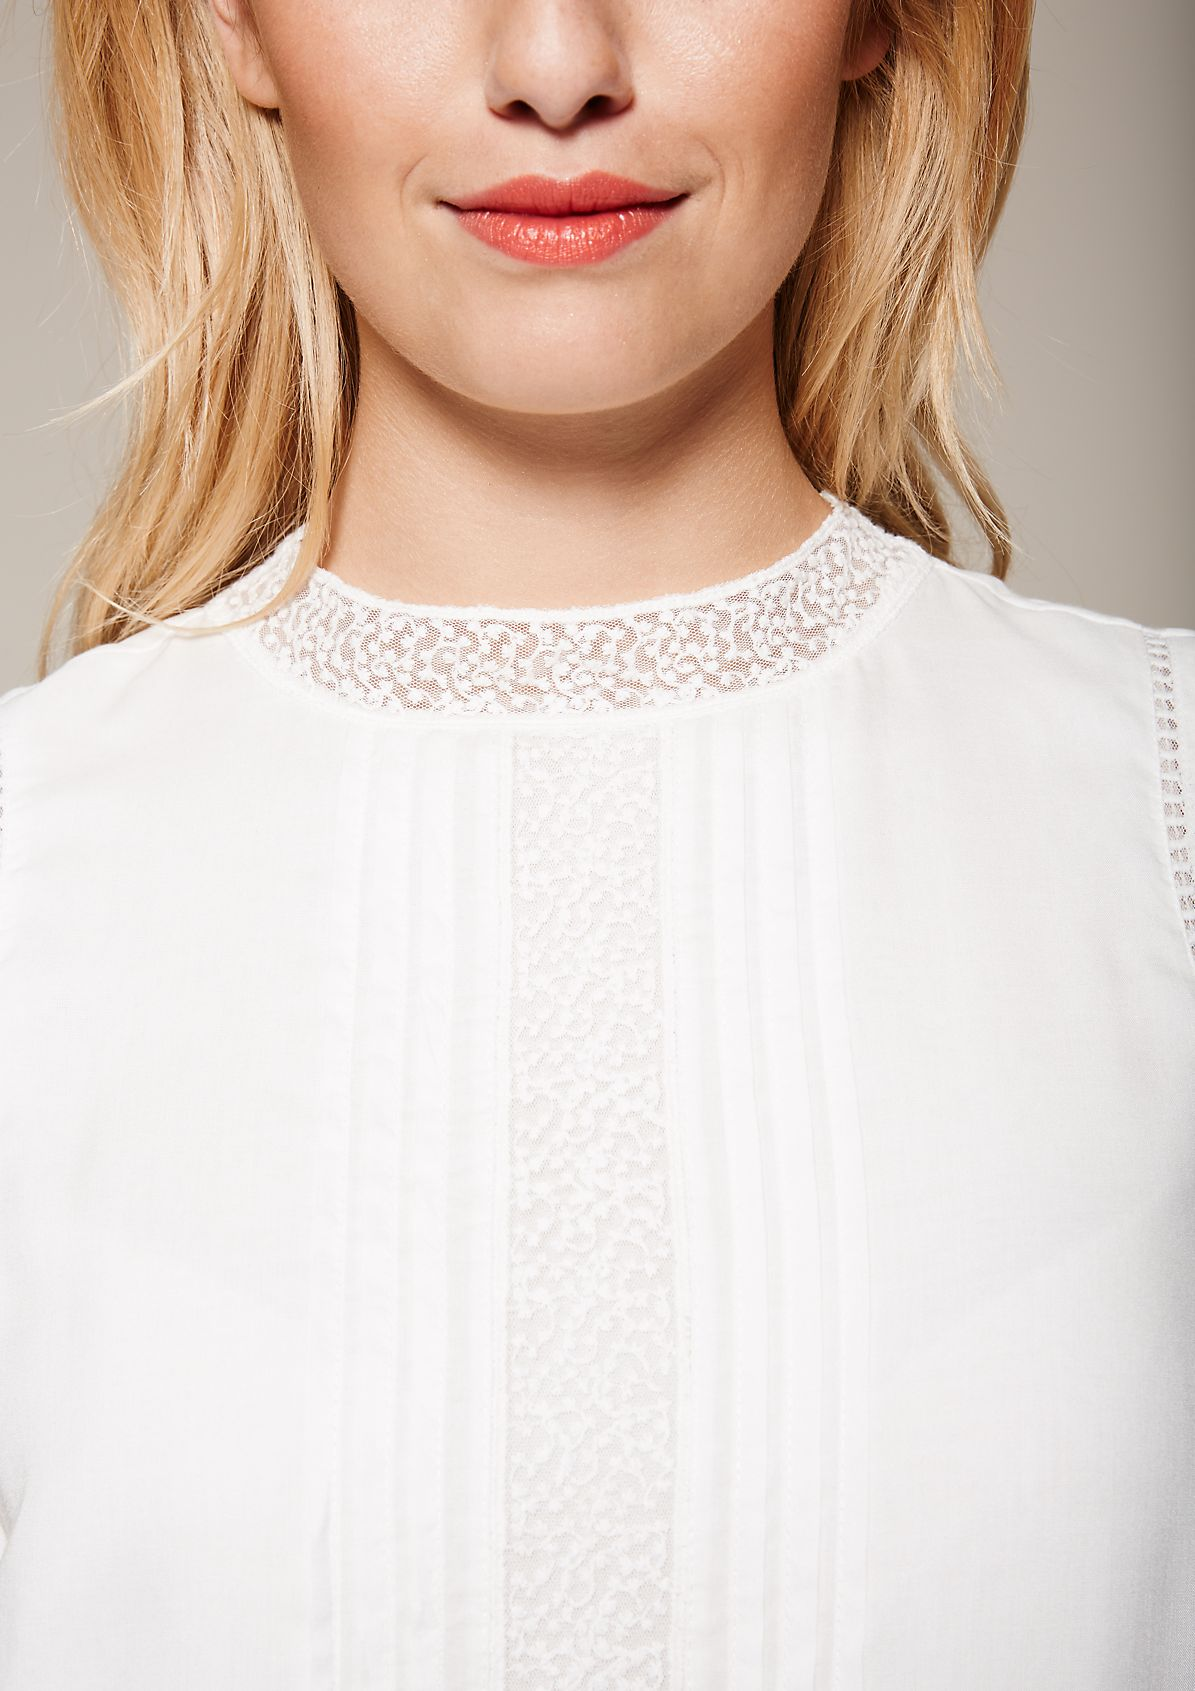 Glamorous top with delicate lace elements from s.Oliver